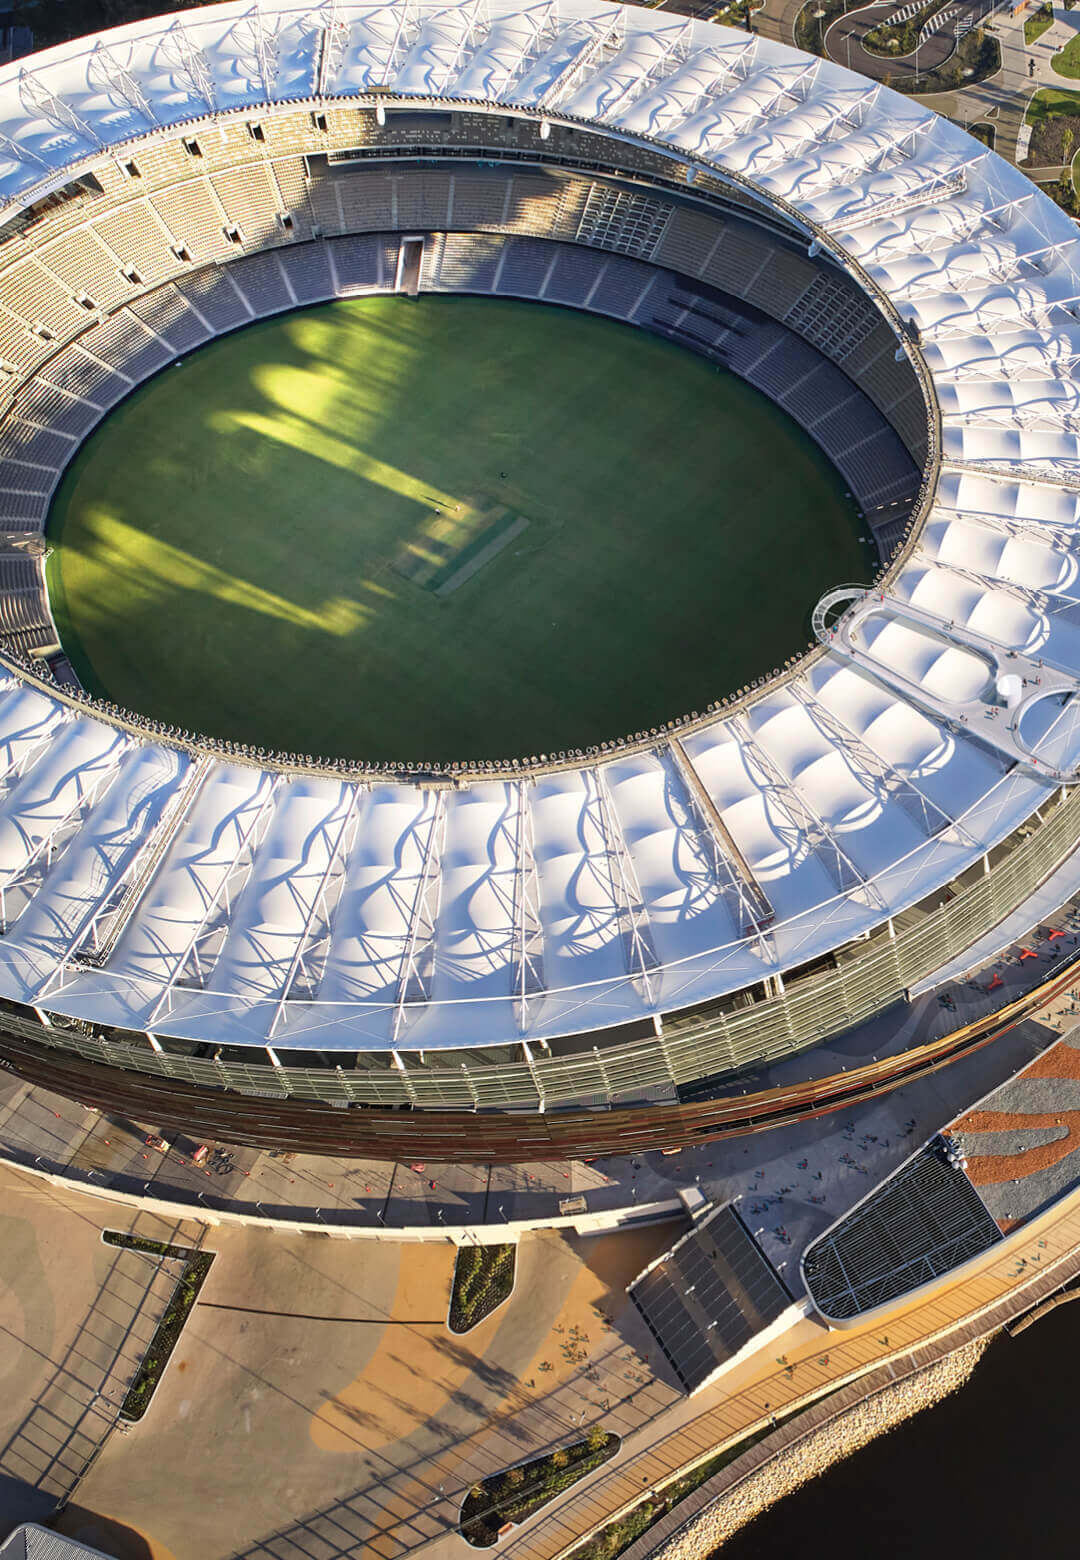 Hassell has designed a new viewing platform on the roof of Optus Stadium in Perth, Australia | Ring Pull Platform for Optus Stadium by Hassell | STIRworld